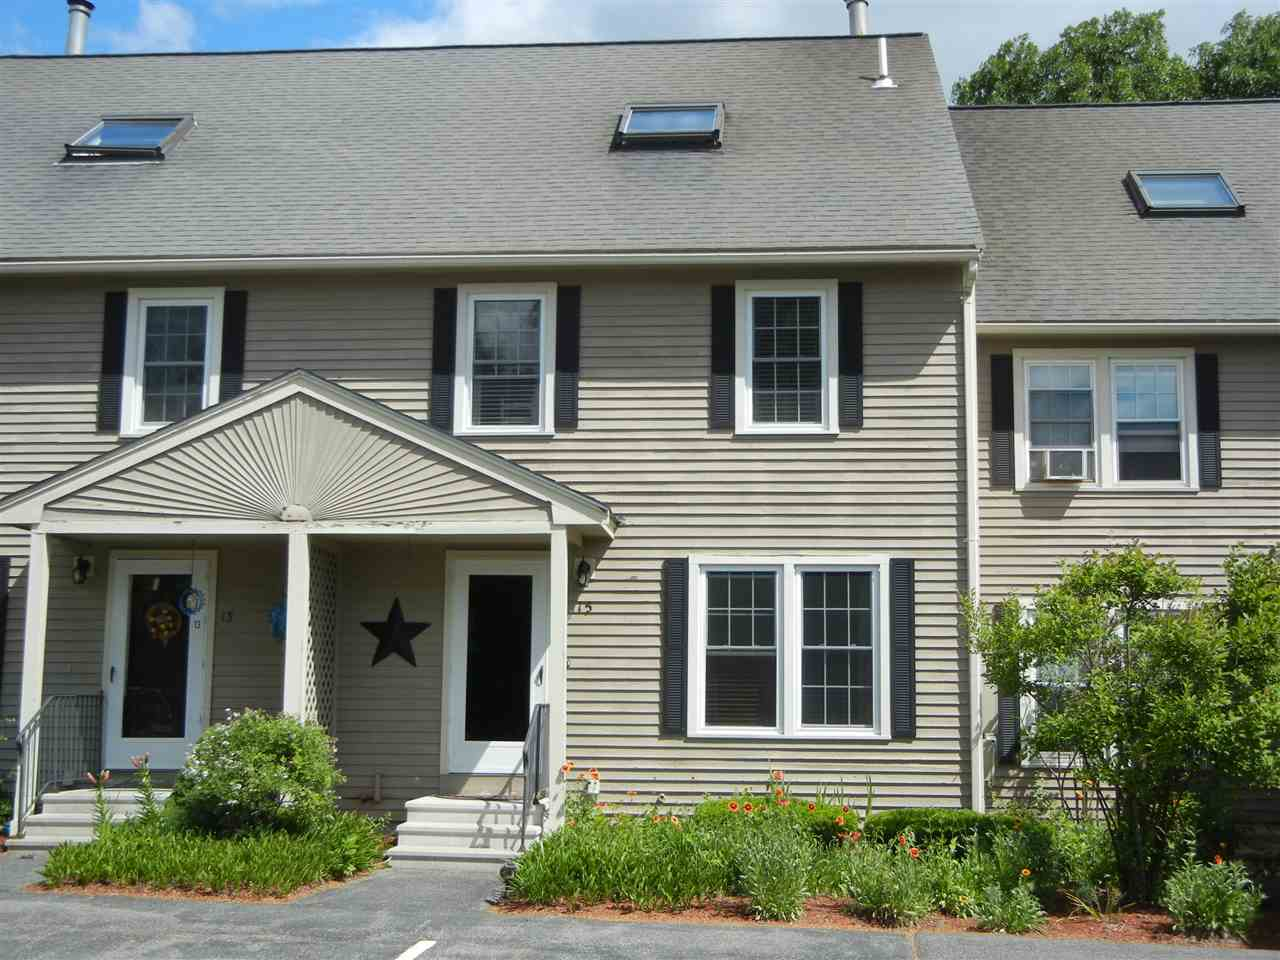 image of Salem NH Condo | sq.ft. 1664